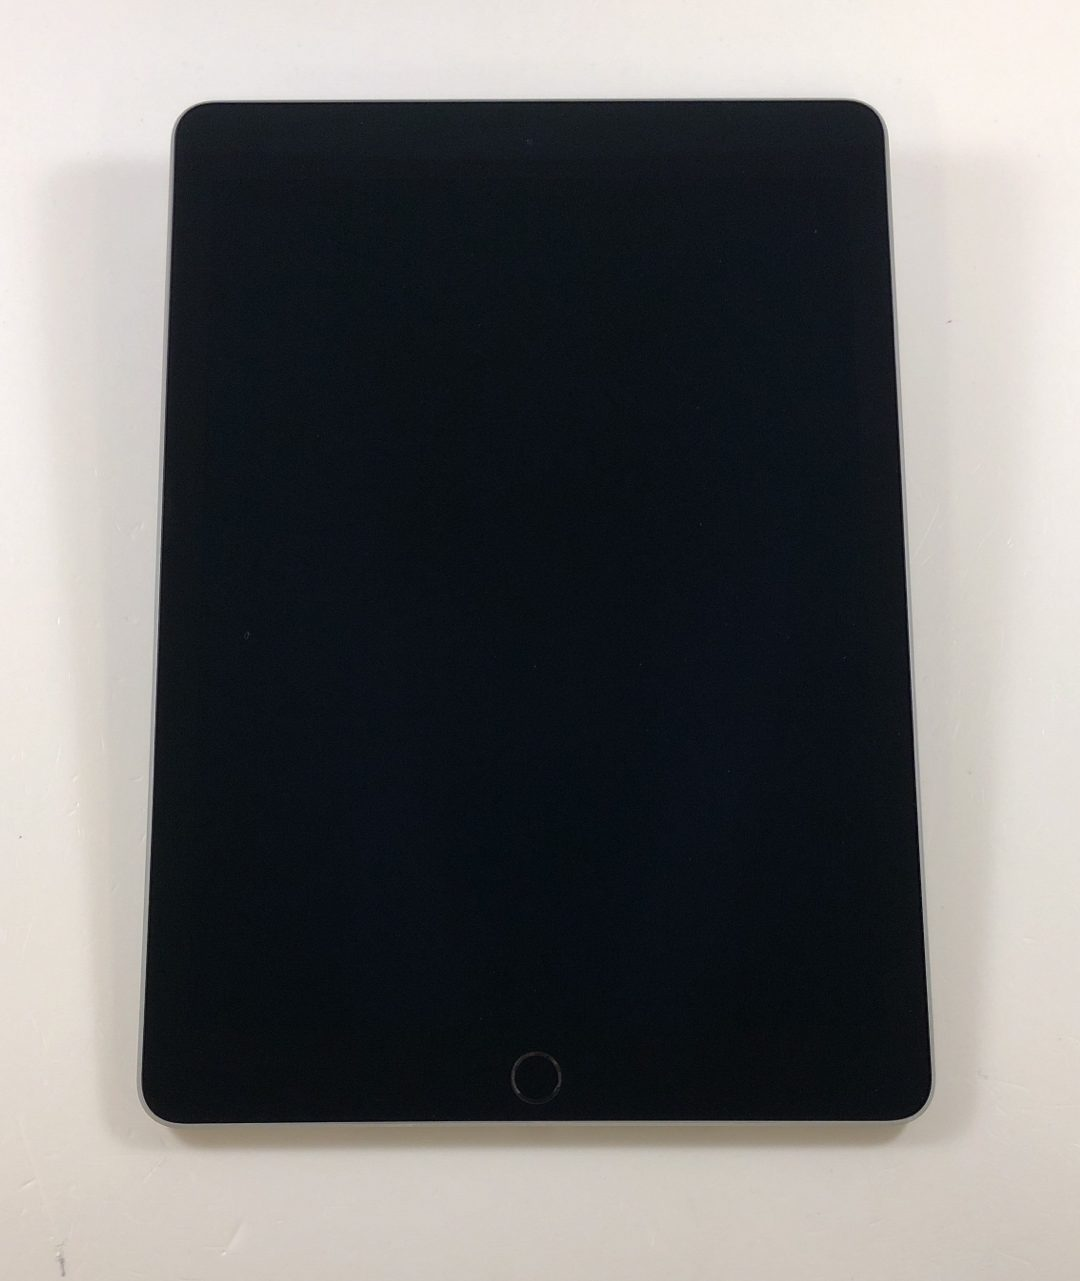 iPad Air 2 Wi-Fi 64GB, 64GB, Space Gray, imagen 1